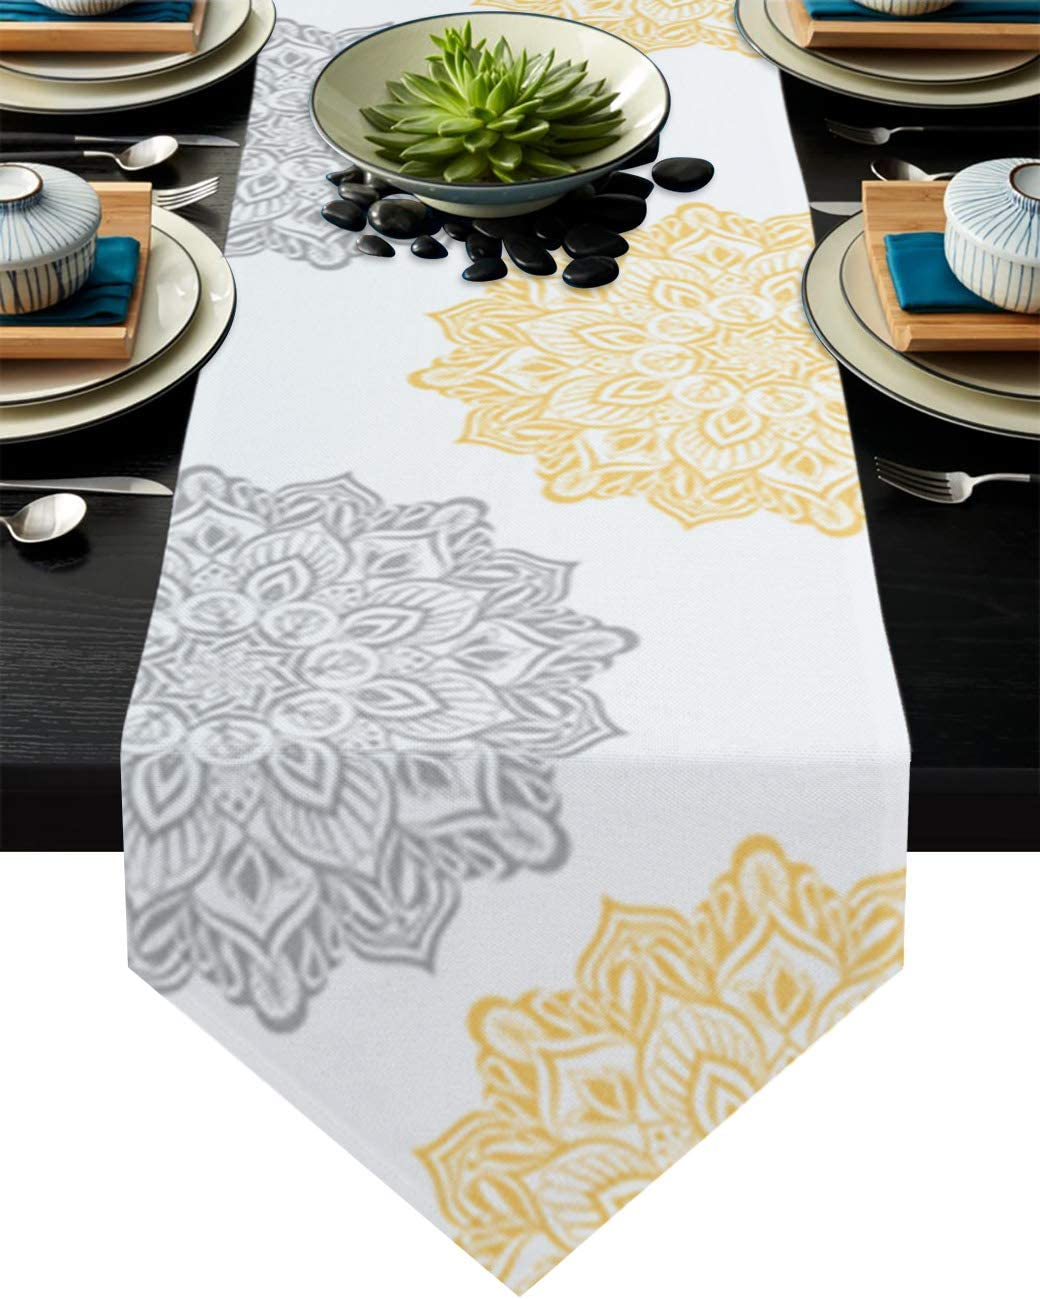 Cotton Linen Burlap Table Runner Dresser Scarves,Elegant Dahlia Flowers Yellow Grey Table Runners for Dinning Table,Farmhouse Kitchen Decor,Dinner Holiday Parties,Wedding,Events,Decoration-14x72 Inch